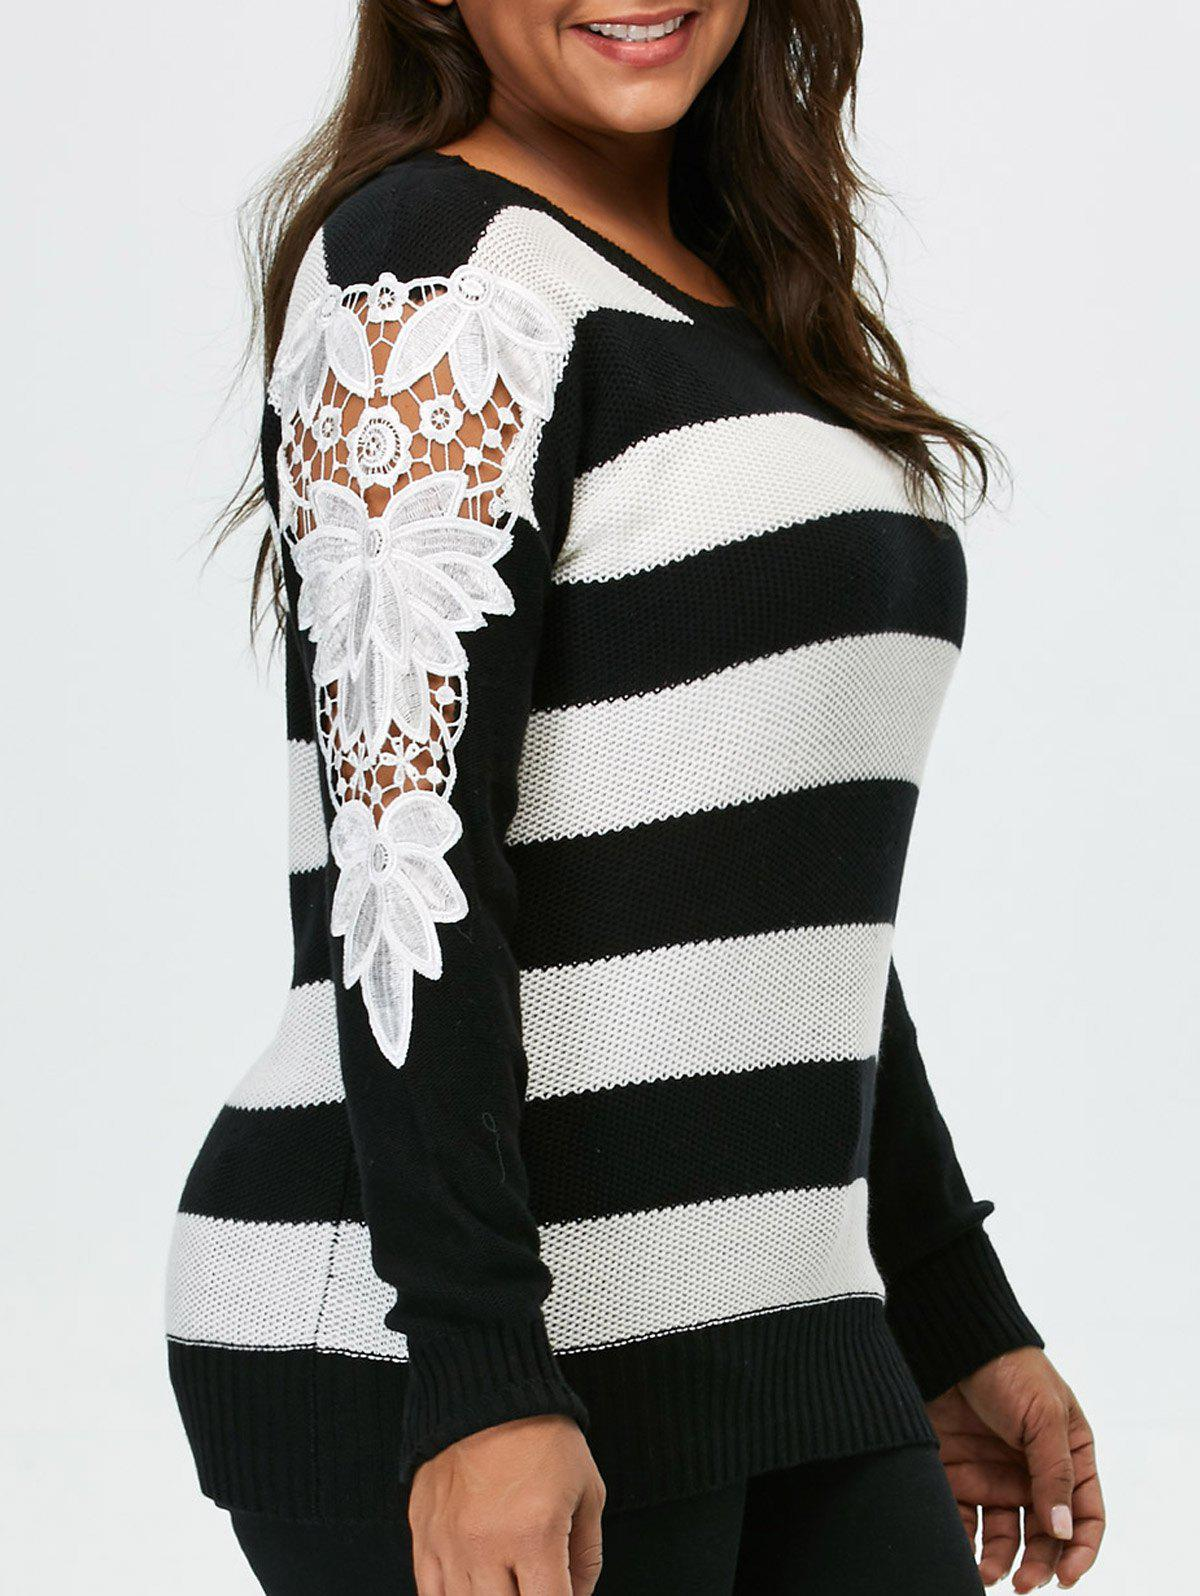 Plus Size Lace Panel Striped SweaterWOMEN<br><br>Size: 5XL; Color: BLACK; Type: Pullovers; Material: Polyester; Sleeve Length: Full; Collar: Crew Neck; Style: Casual; Season: Fall,Spring; Pattern Type: Striped; Weight: 0.350kg; Package Contents: 1 x Sweater;